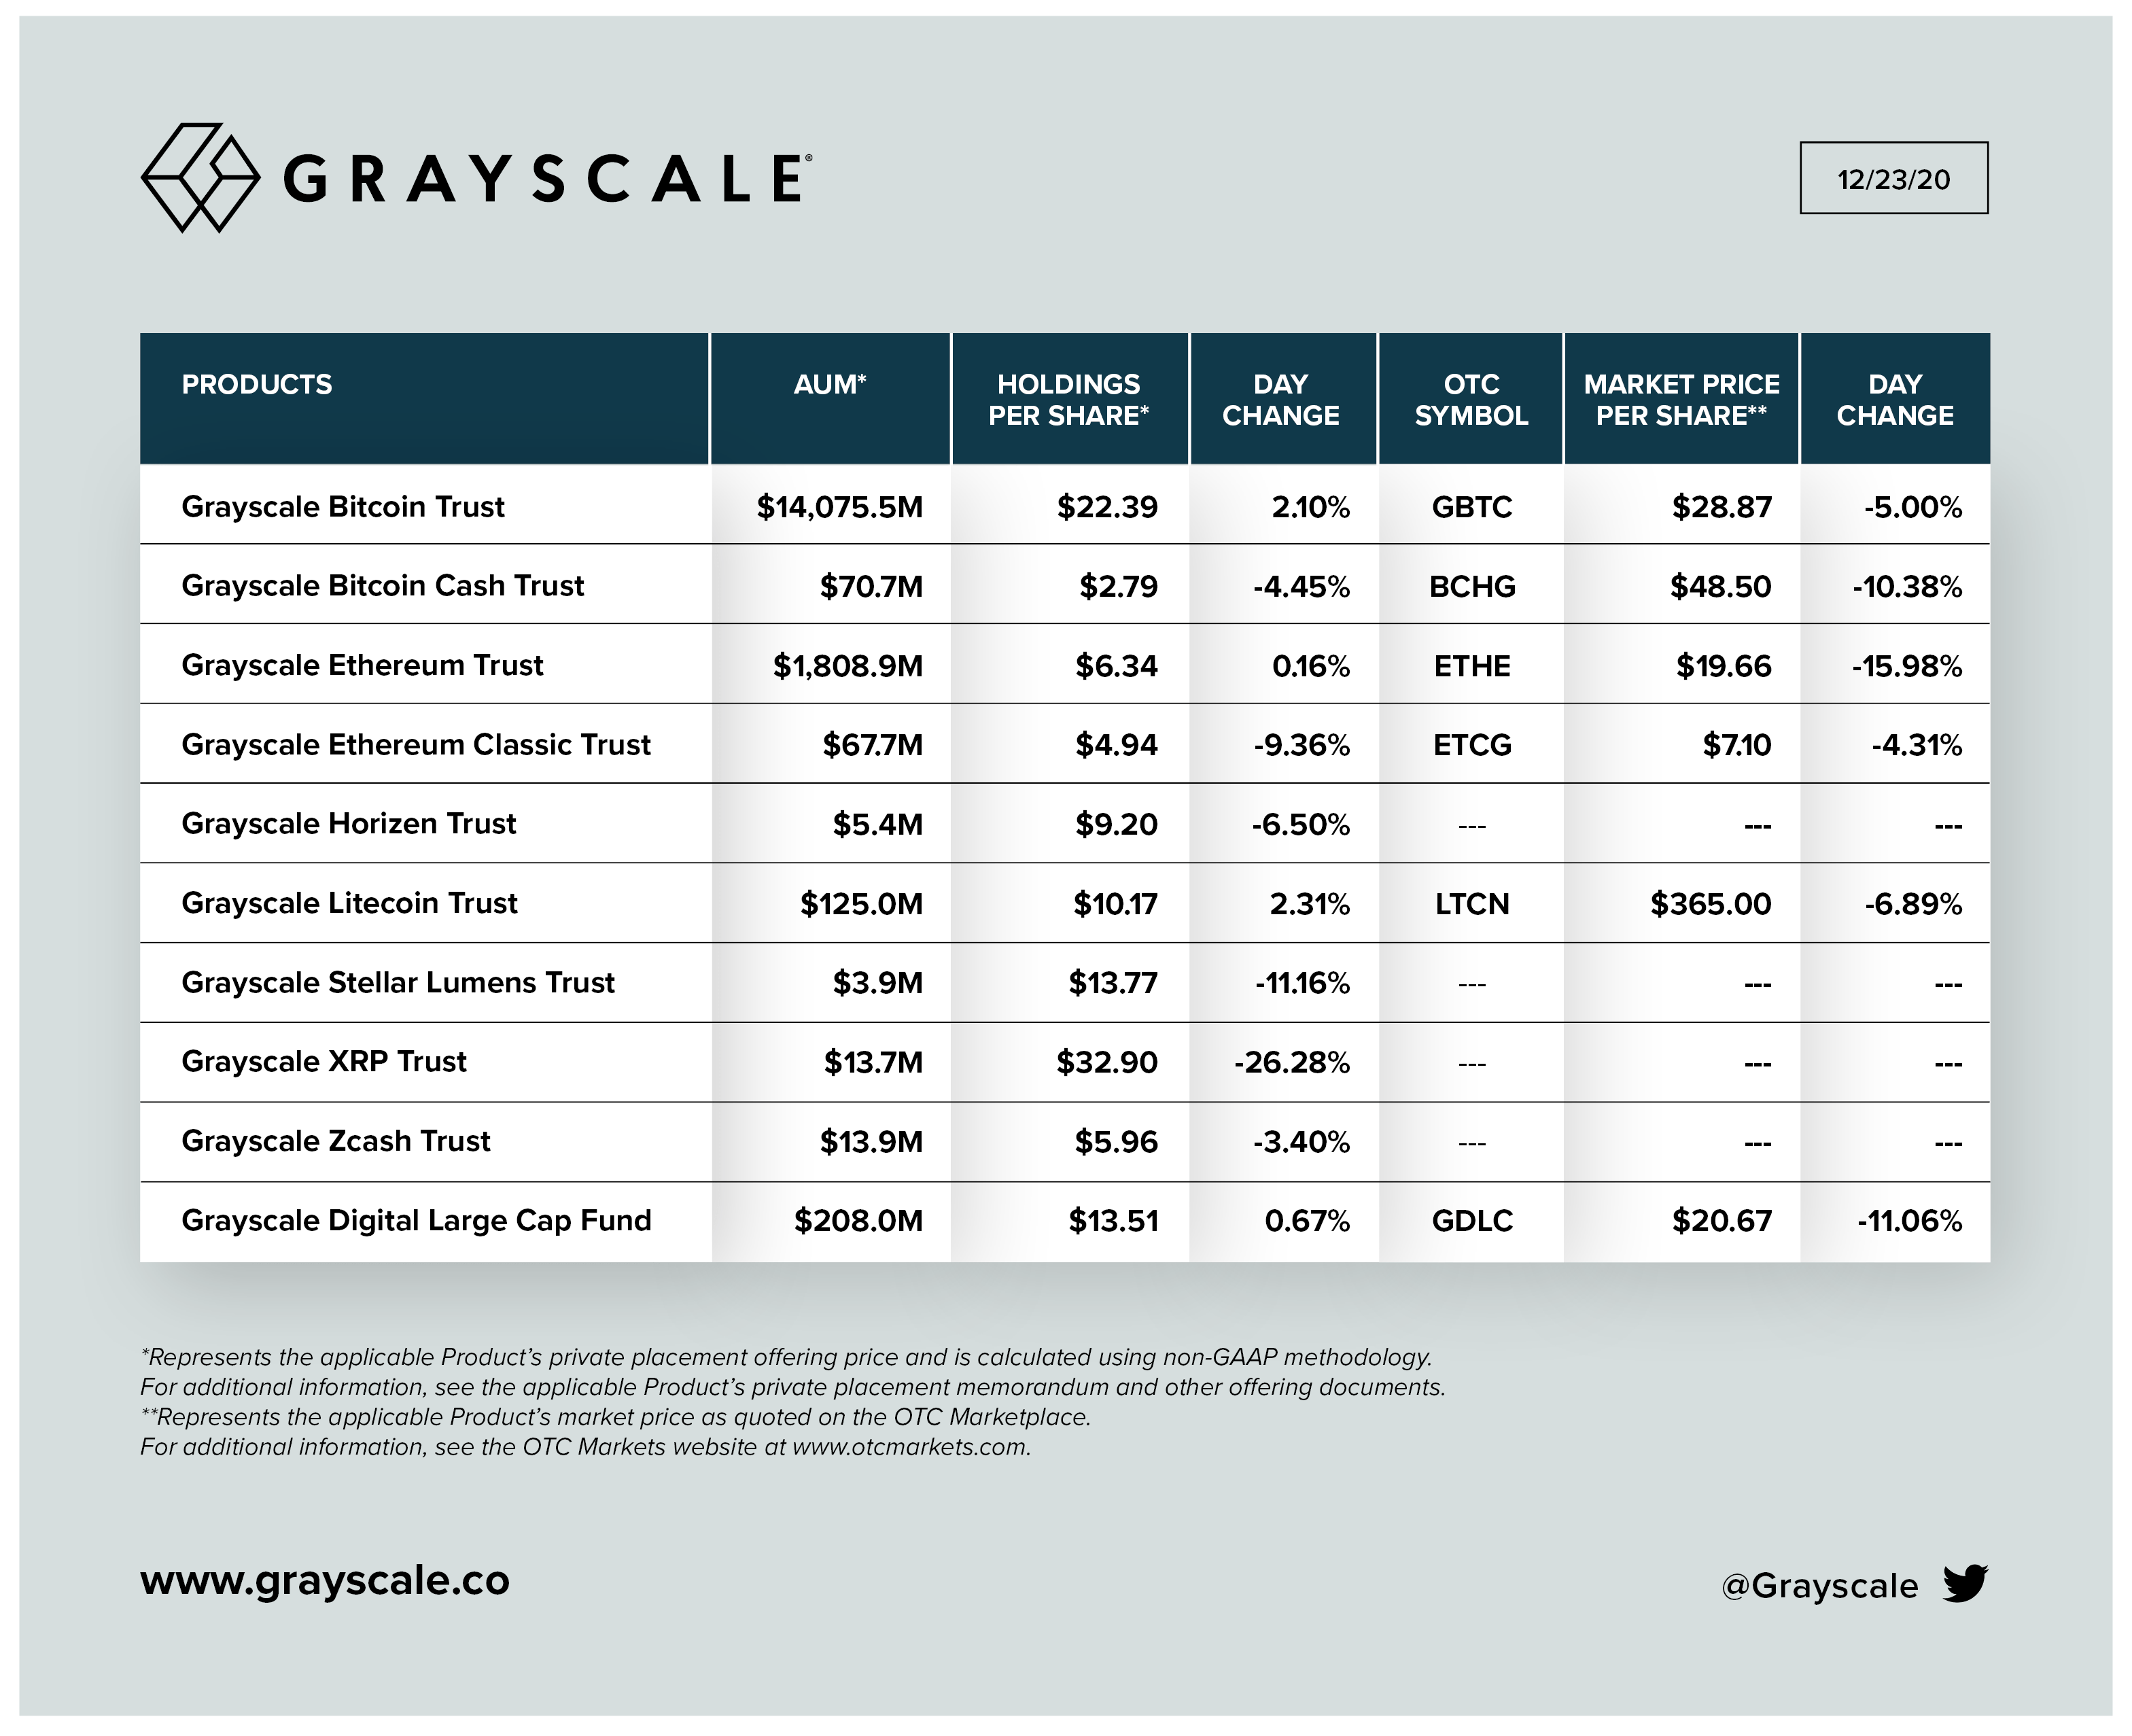 GrayScale assets under management as of December 23